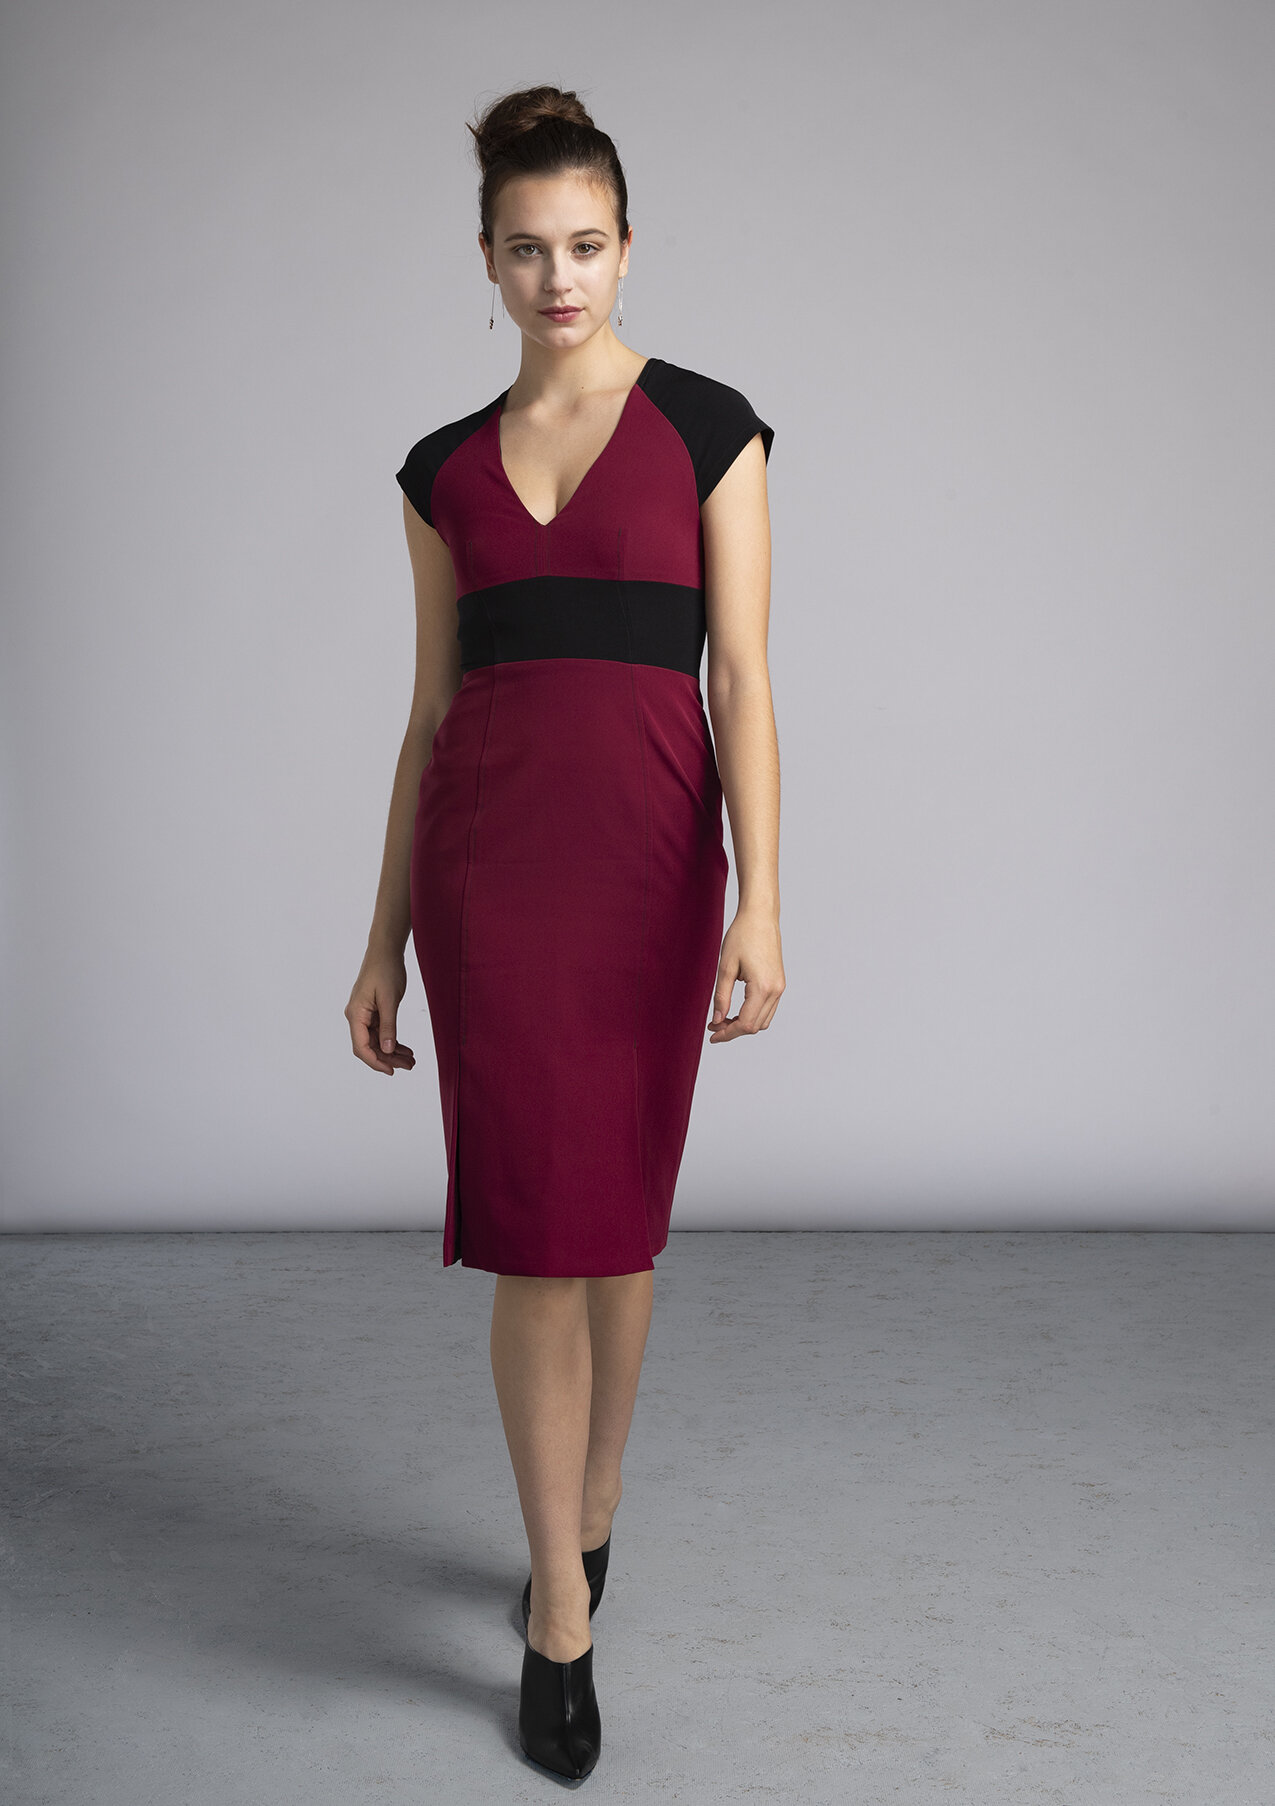 Red and Black colorblock made-to-measure dress